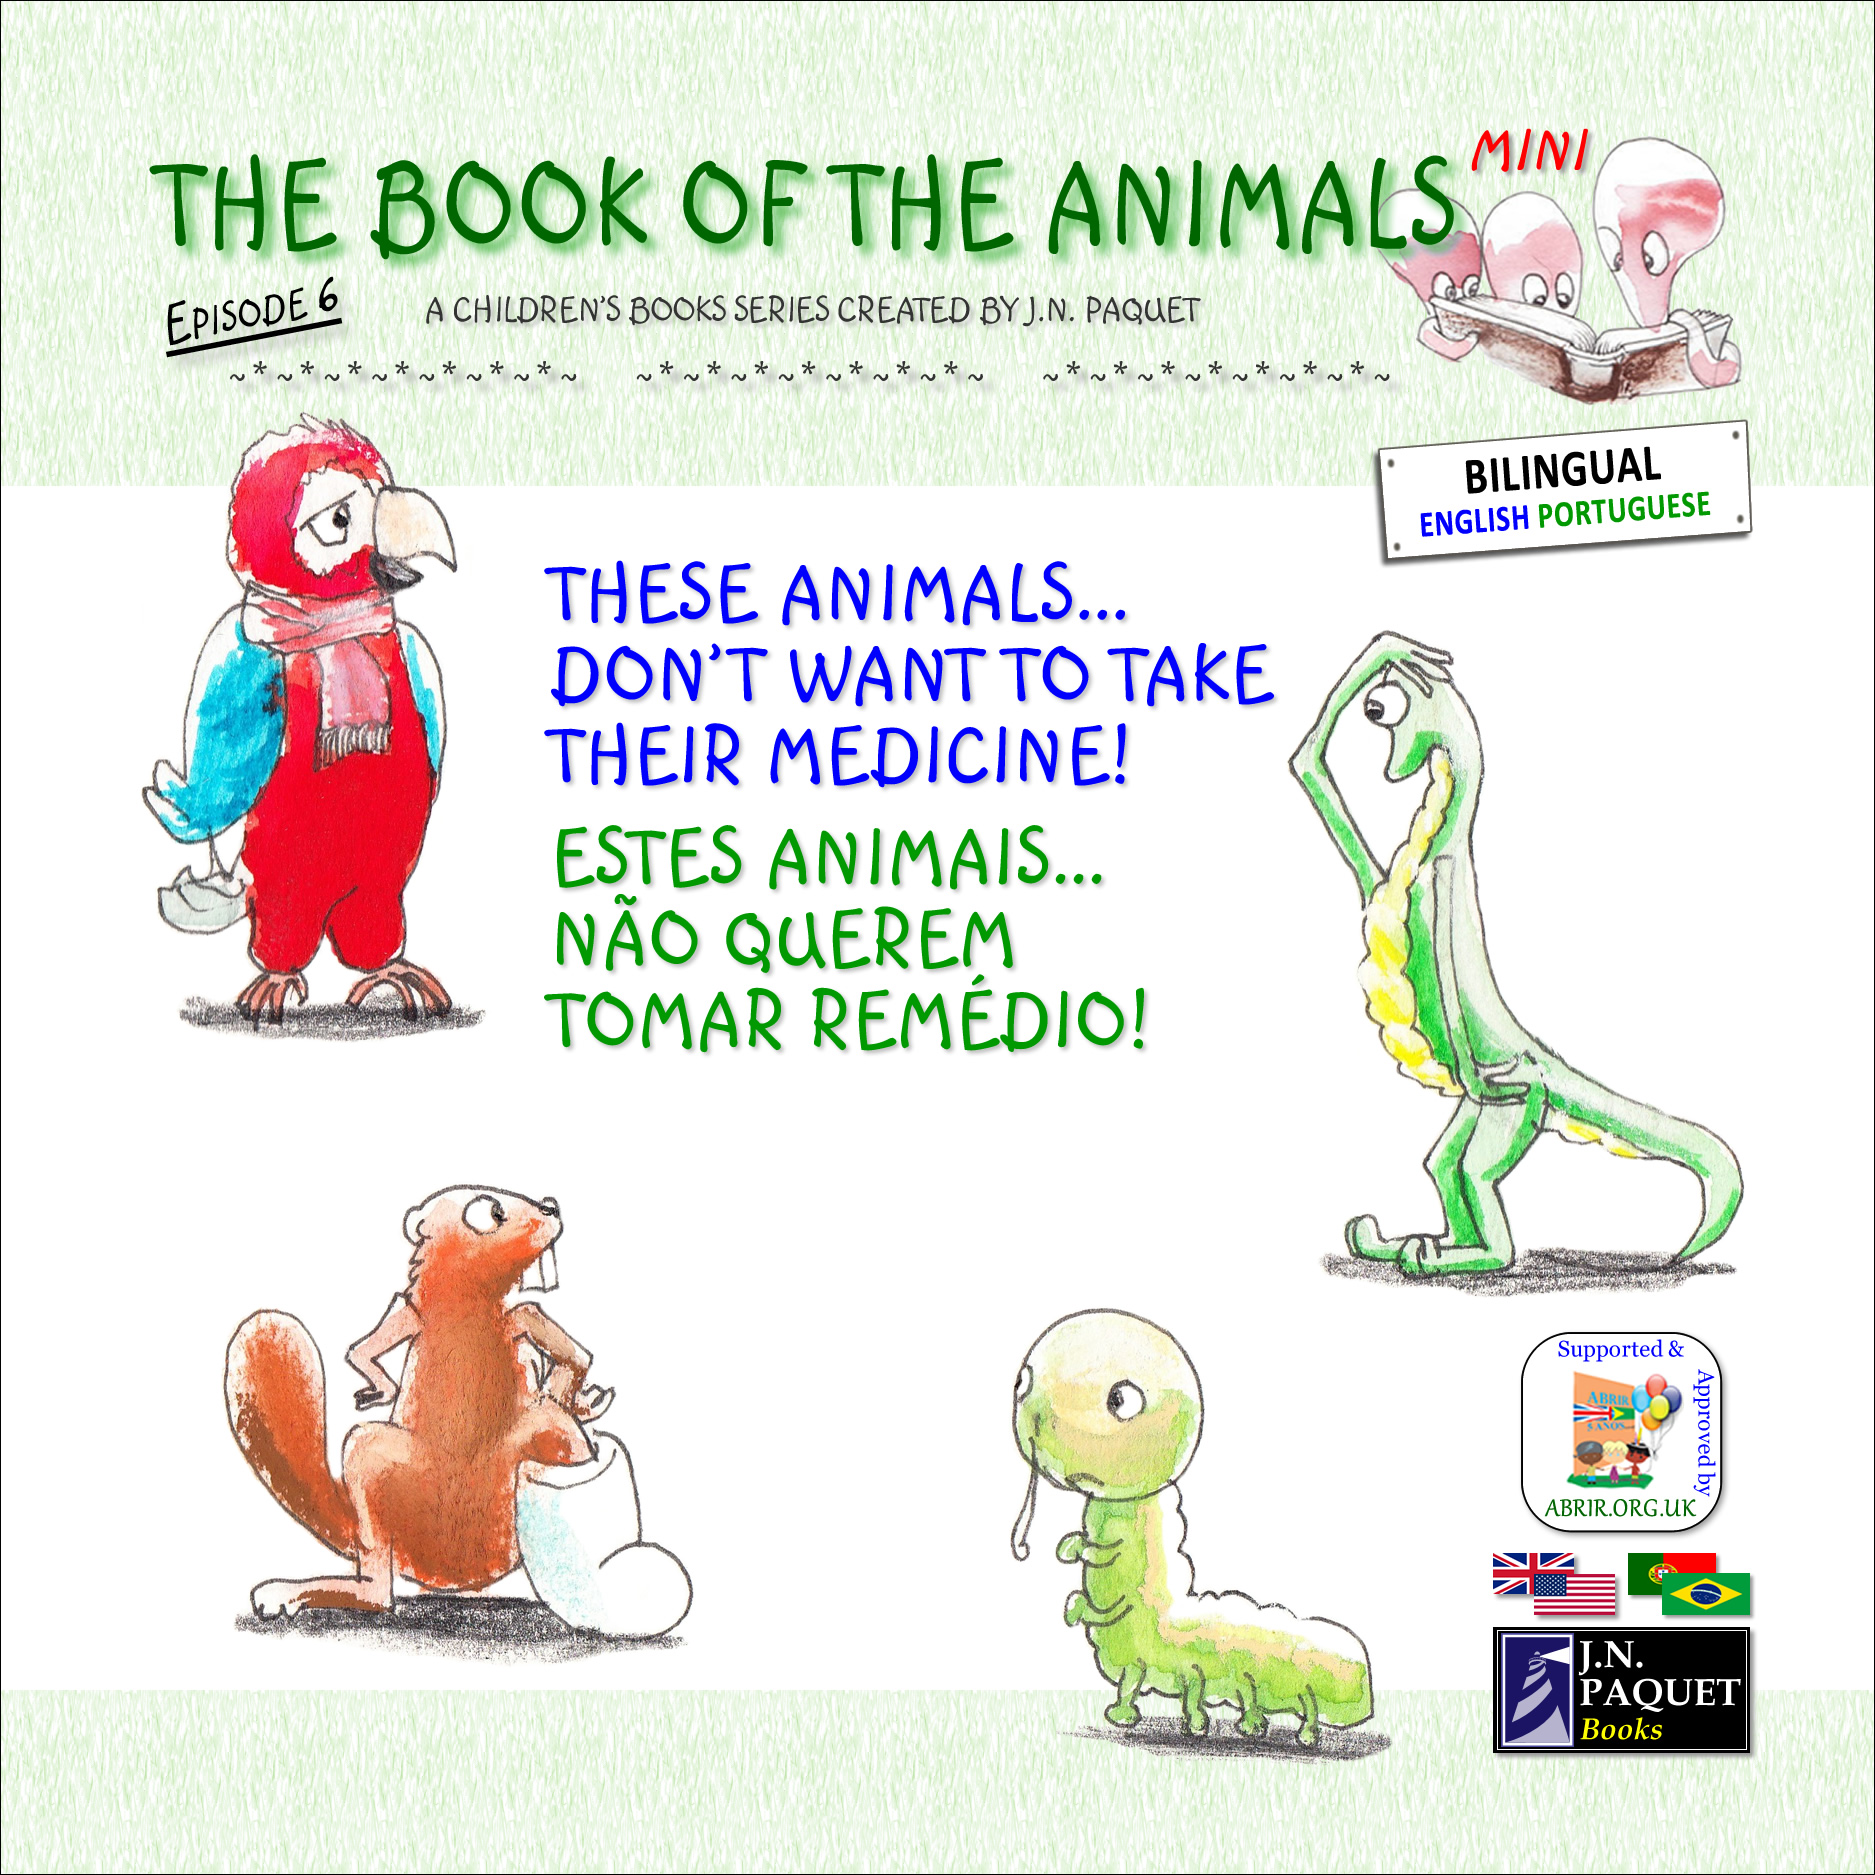 The Book of The Animals - Mini - Episode 6 (Bilingual English-Portuguese)